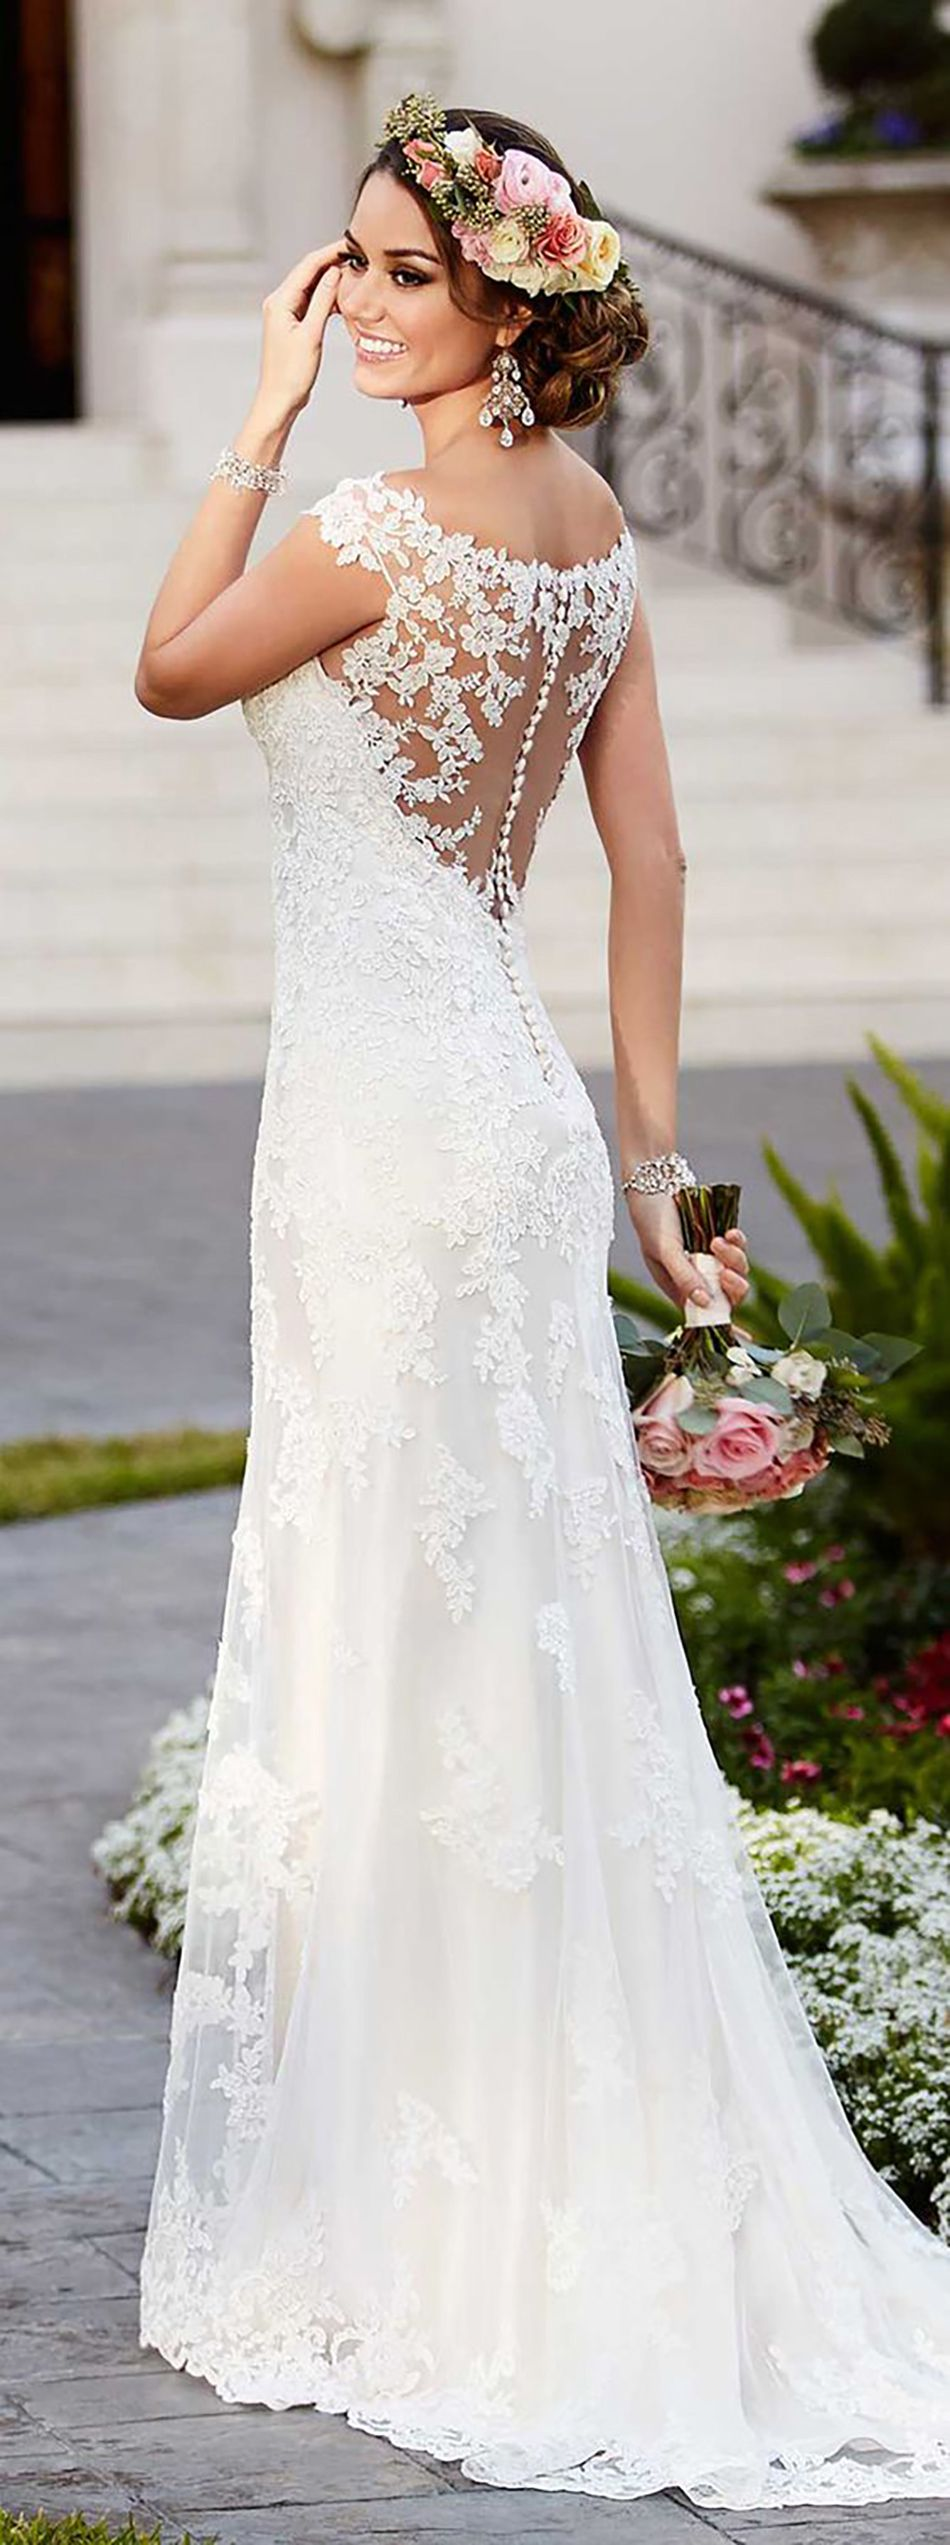 These are the 5 most popular wedding dresses on pinterest right now these are the 5 most popular wedding dresses on pinterest right now ombrellifo Gallery